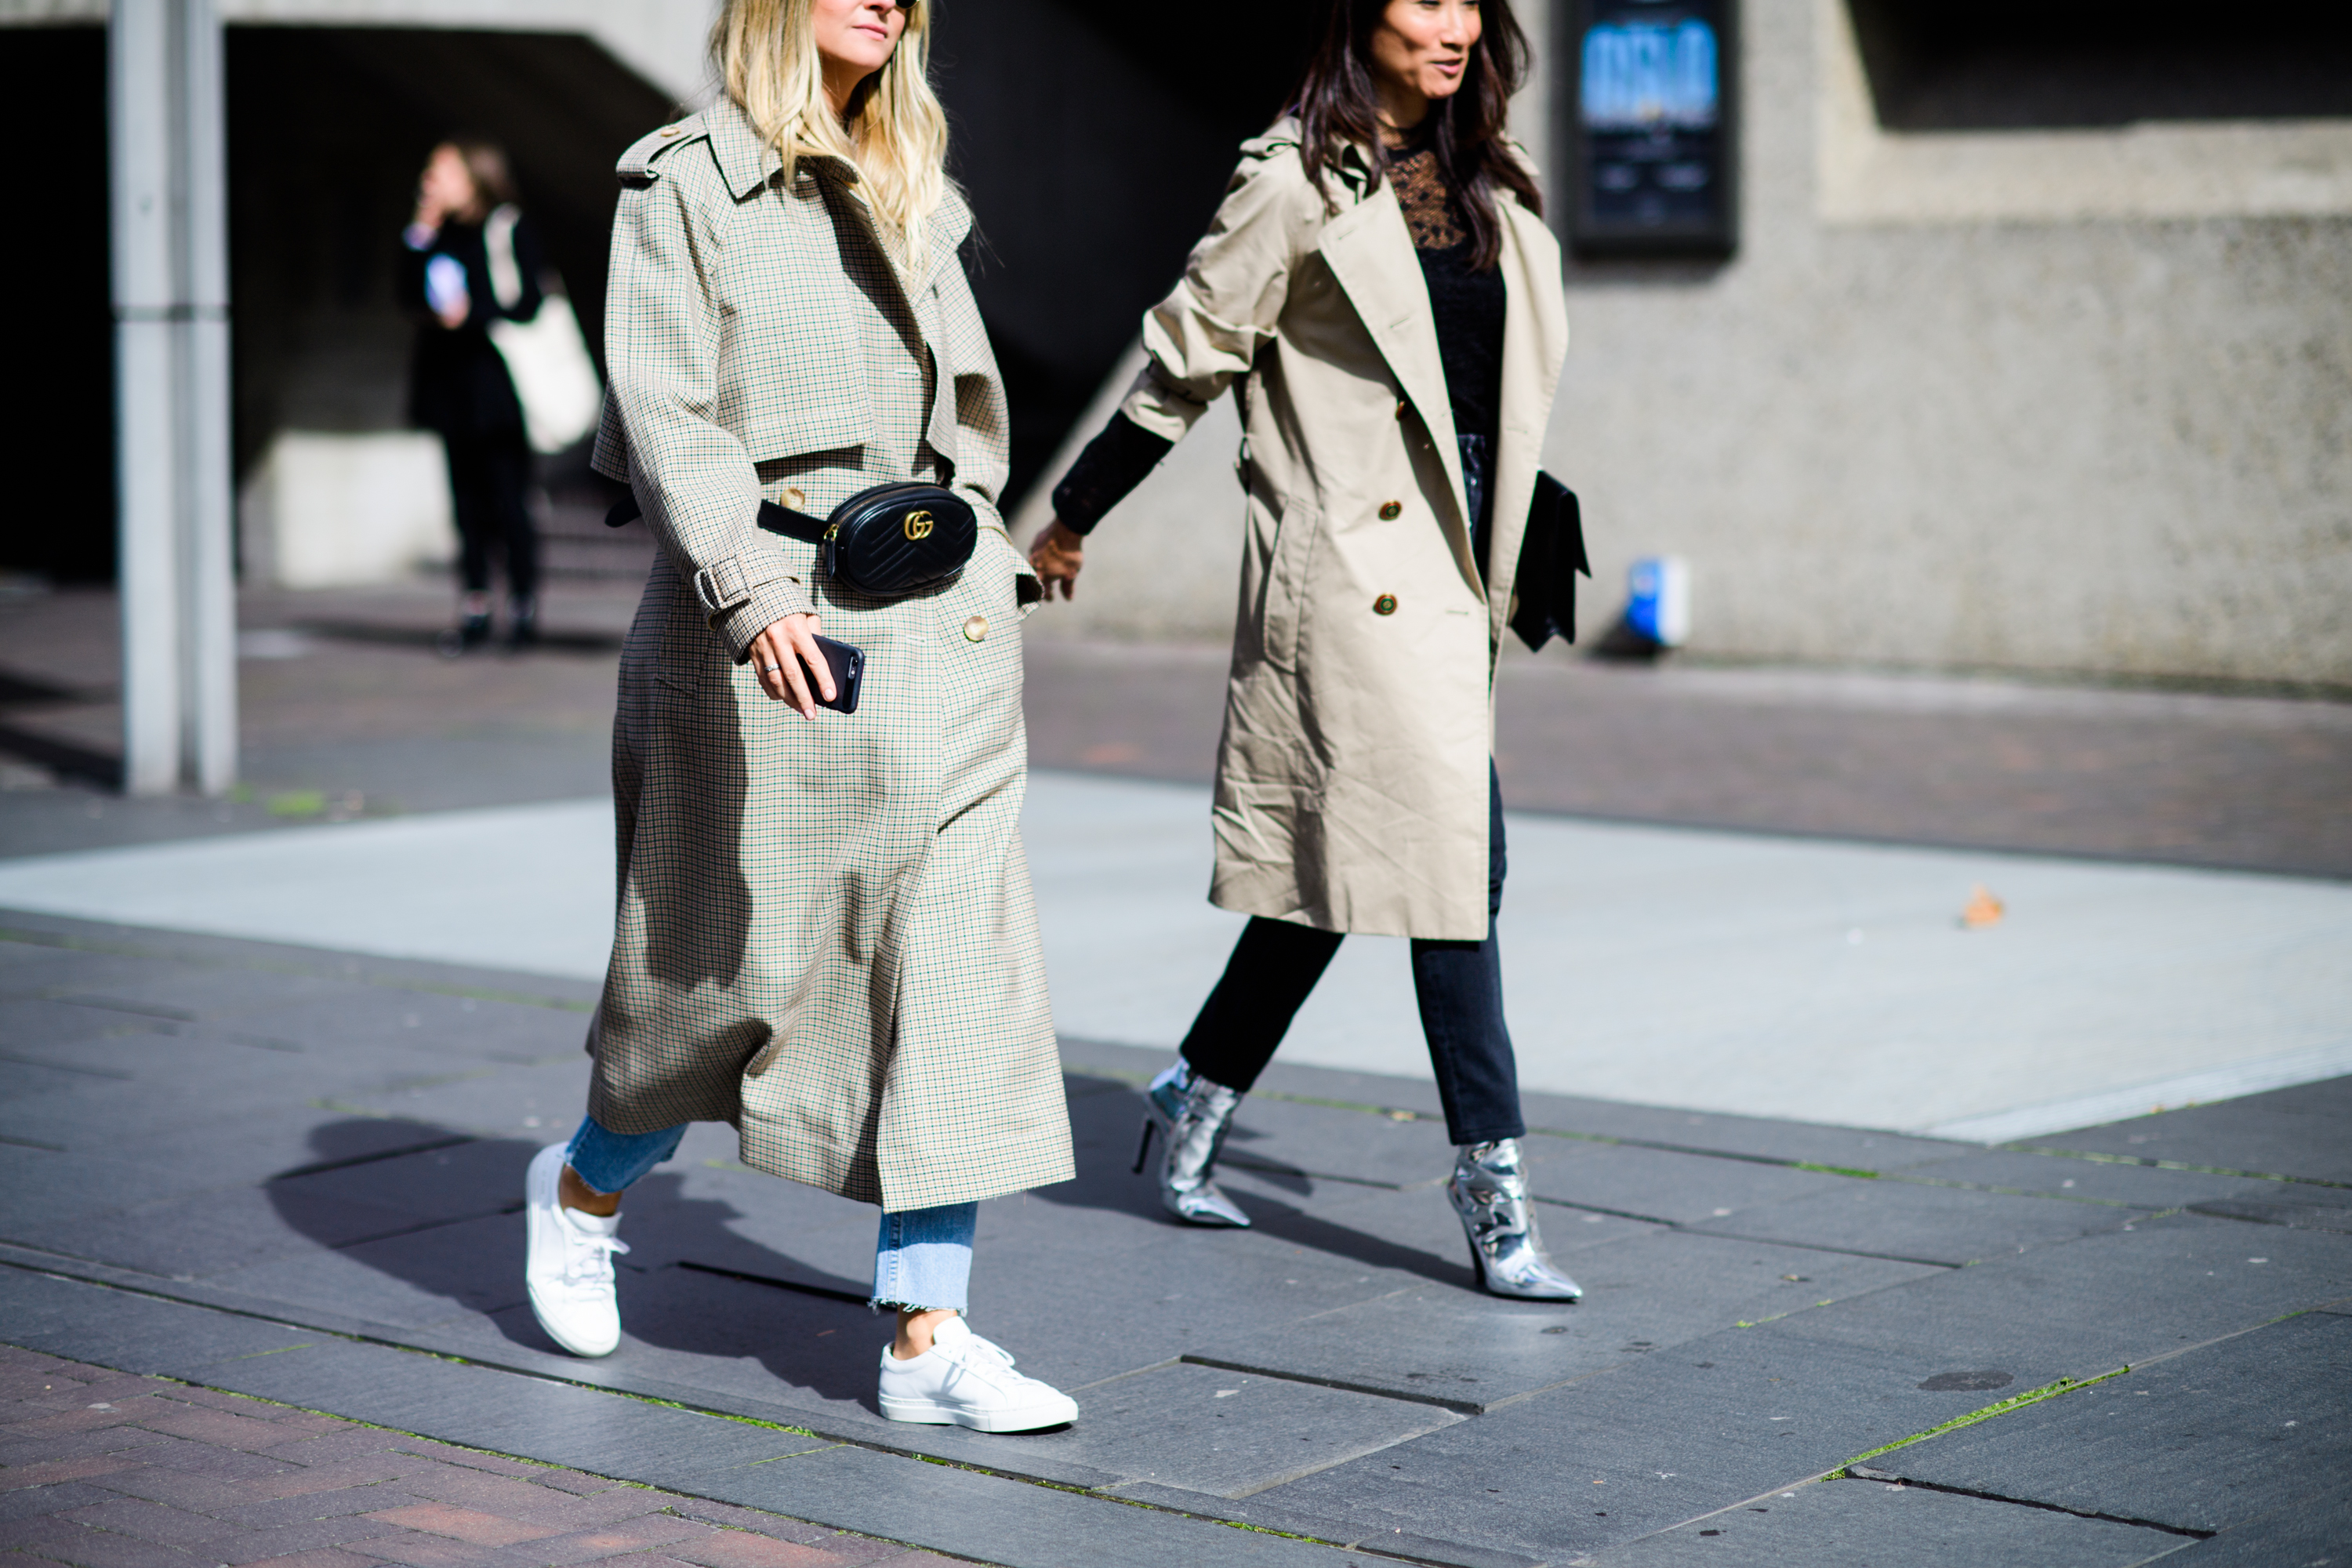 london-lfw-street-style-ss18-day-2-tyler-joe-066-1505754162